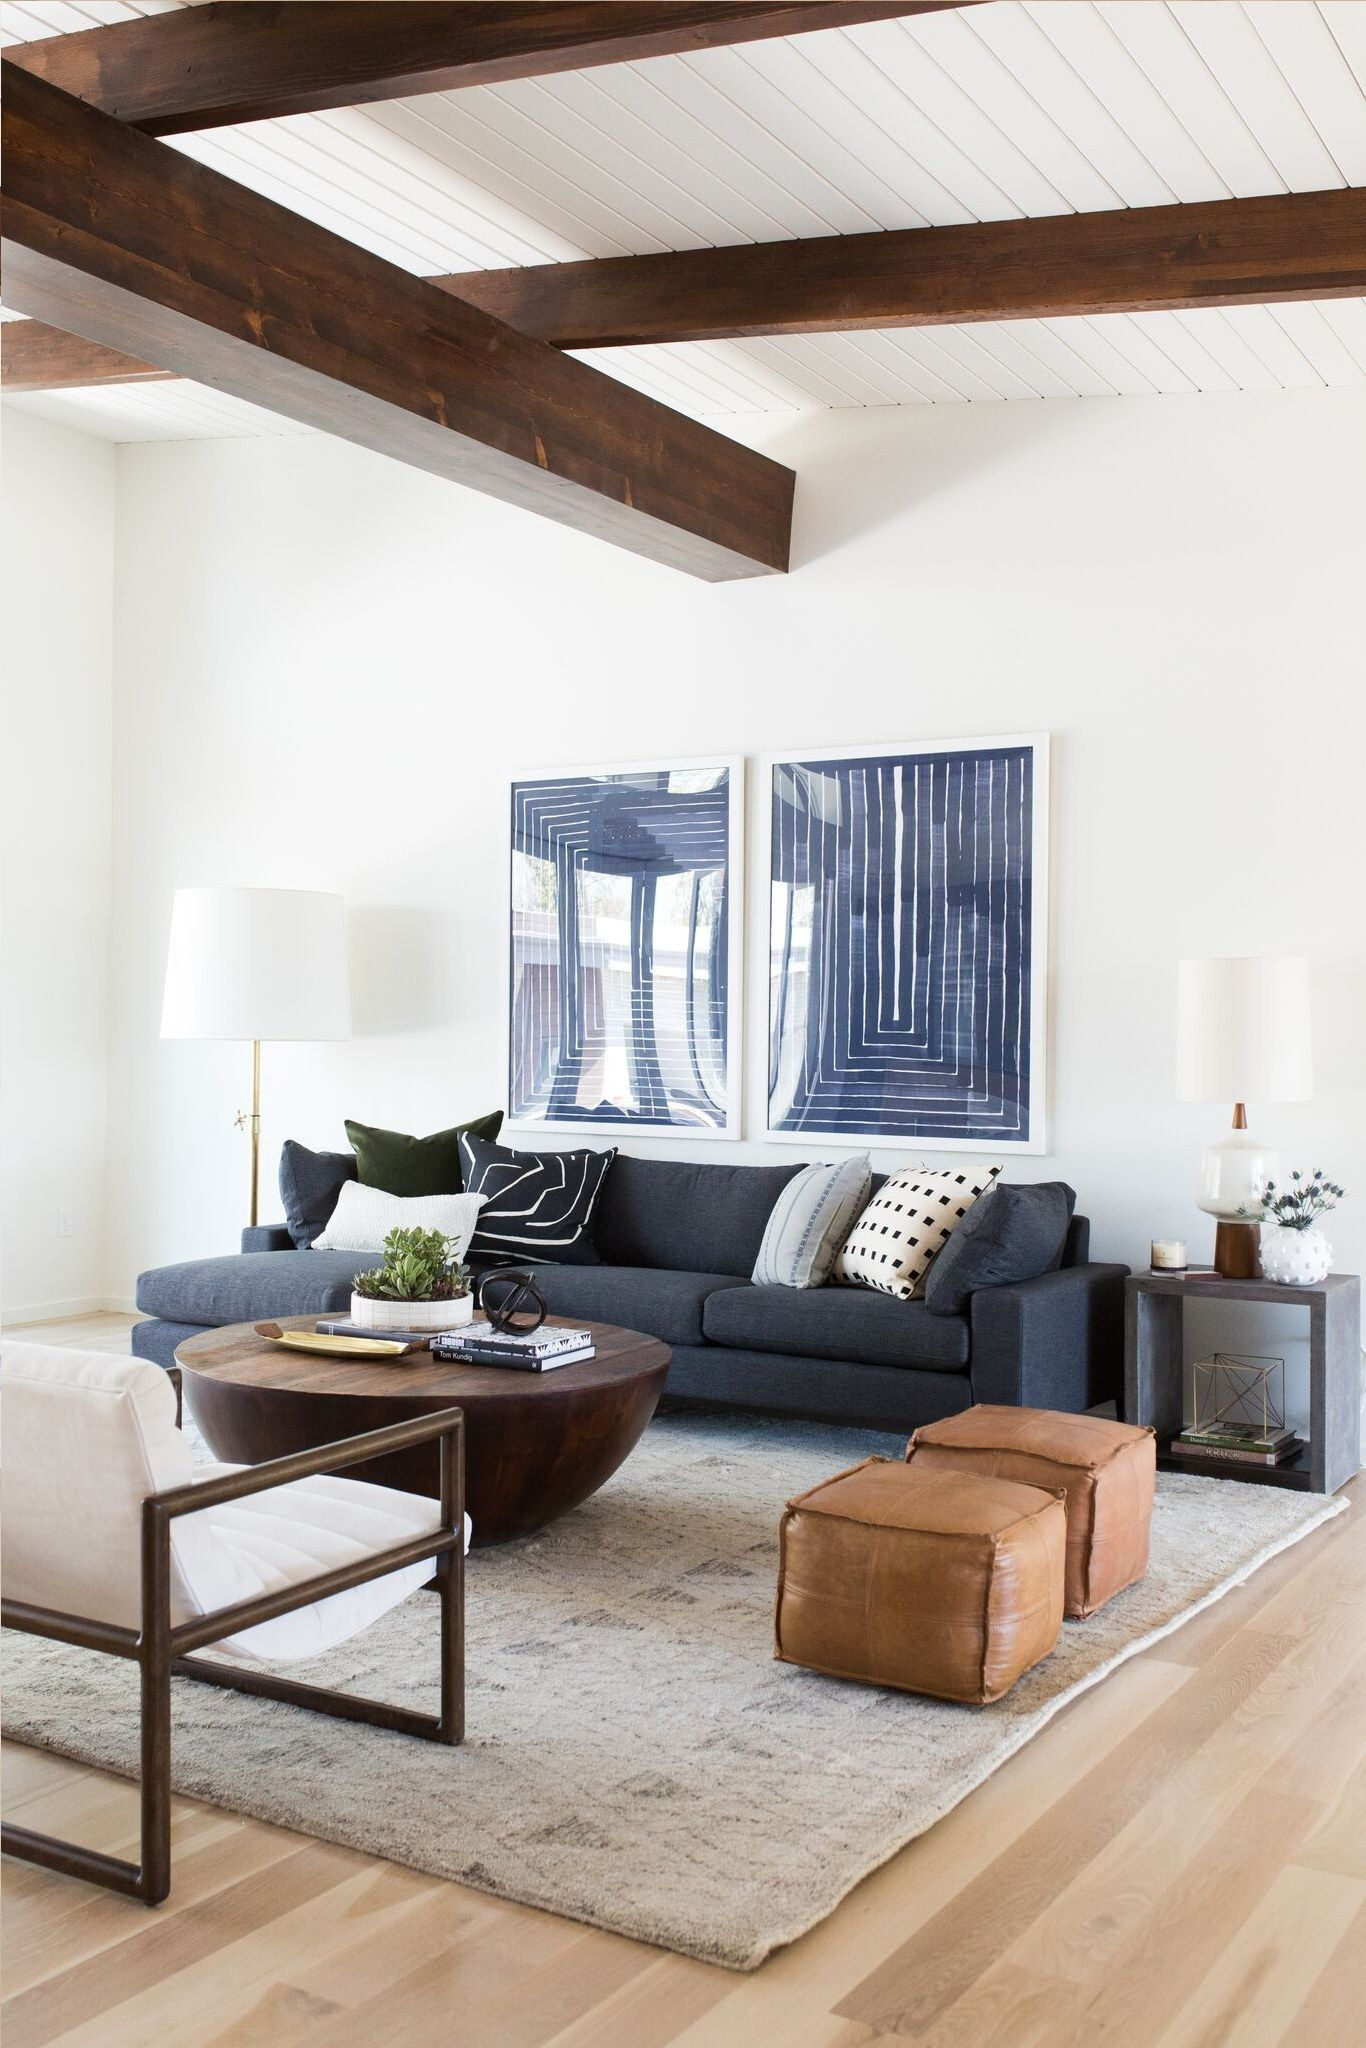 Living Room Decor. Be particularly galvanized by styles, trends ...